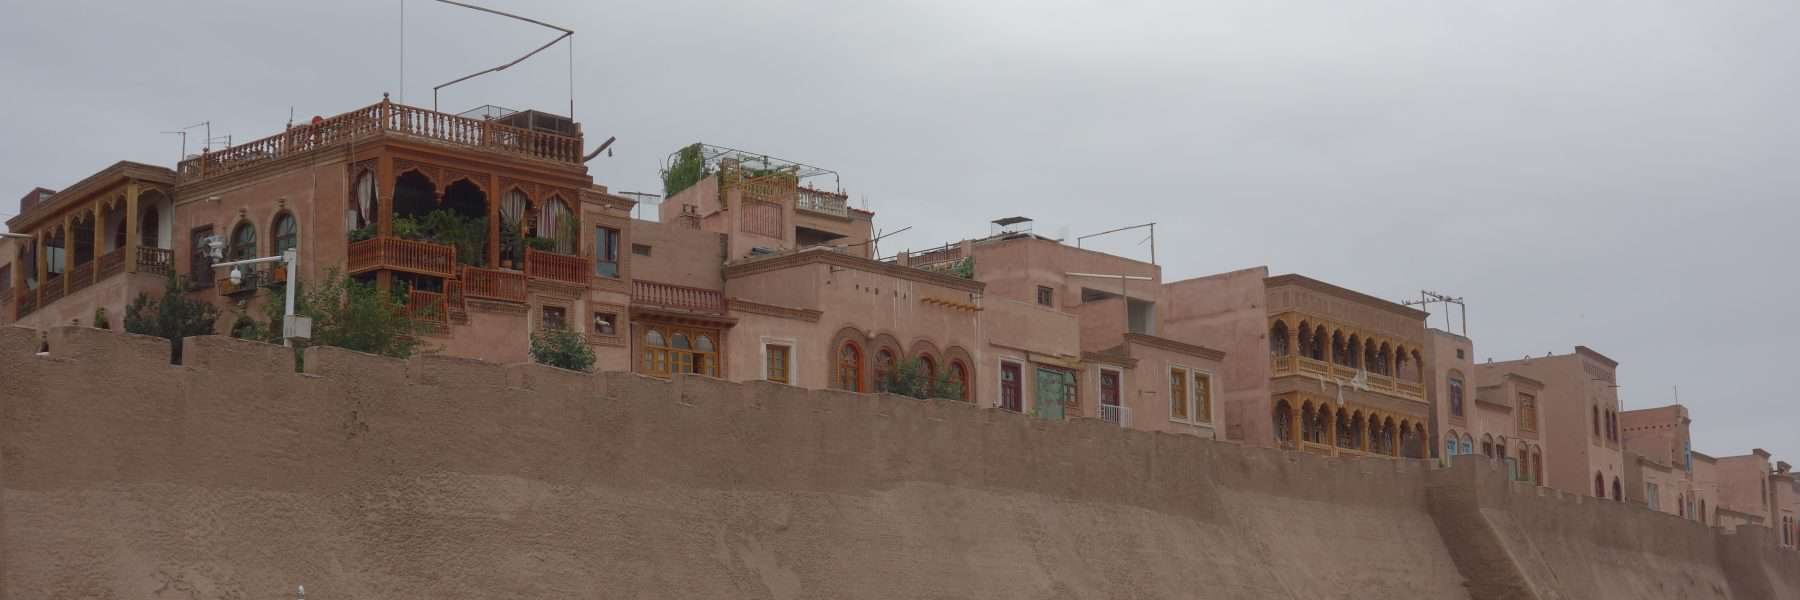 Old Town of Kashgar, China